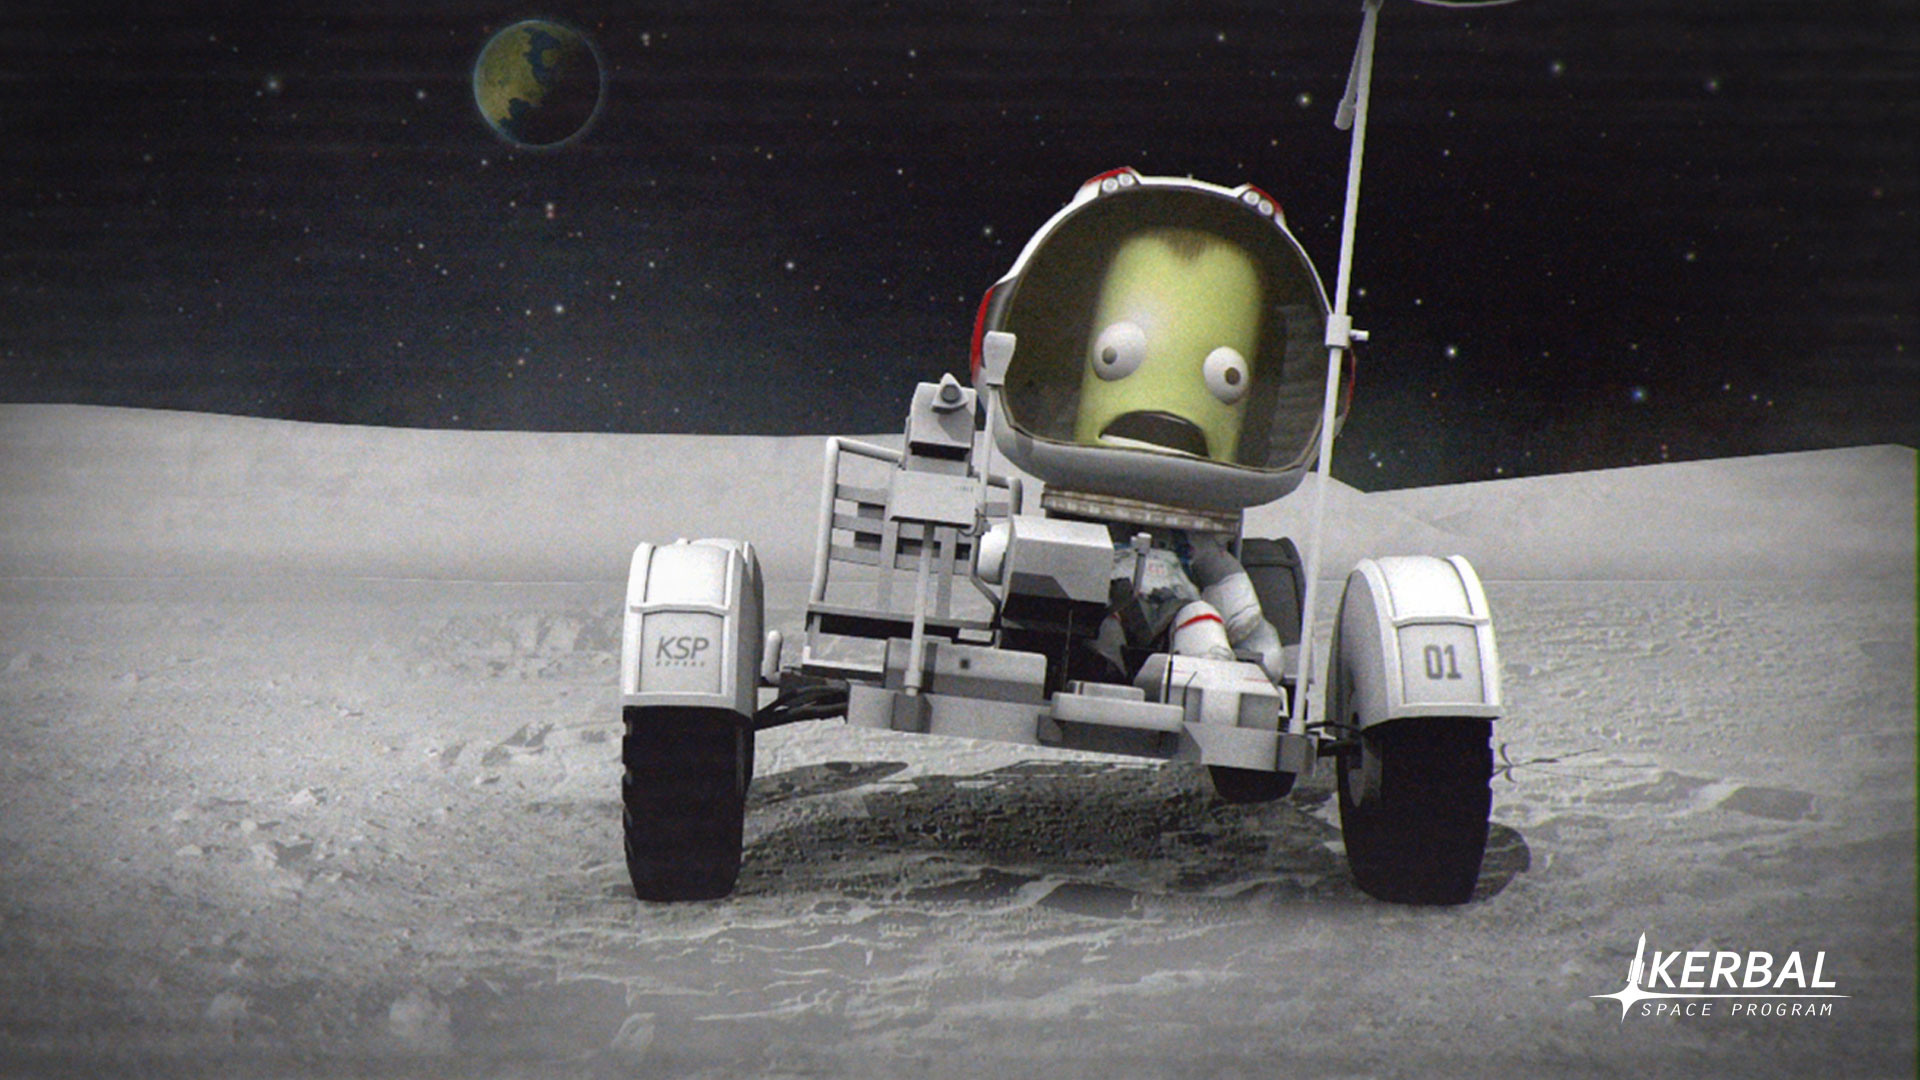 Like Earth's astronauts, Kerbals enjoy driving around in their shiny new lunar rover. Credit: Squad, Monkey Squad S.A de C.V.